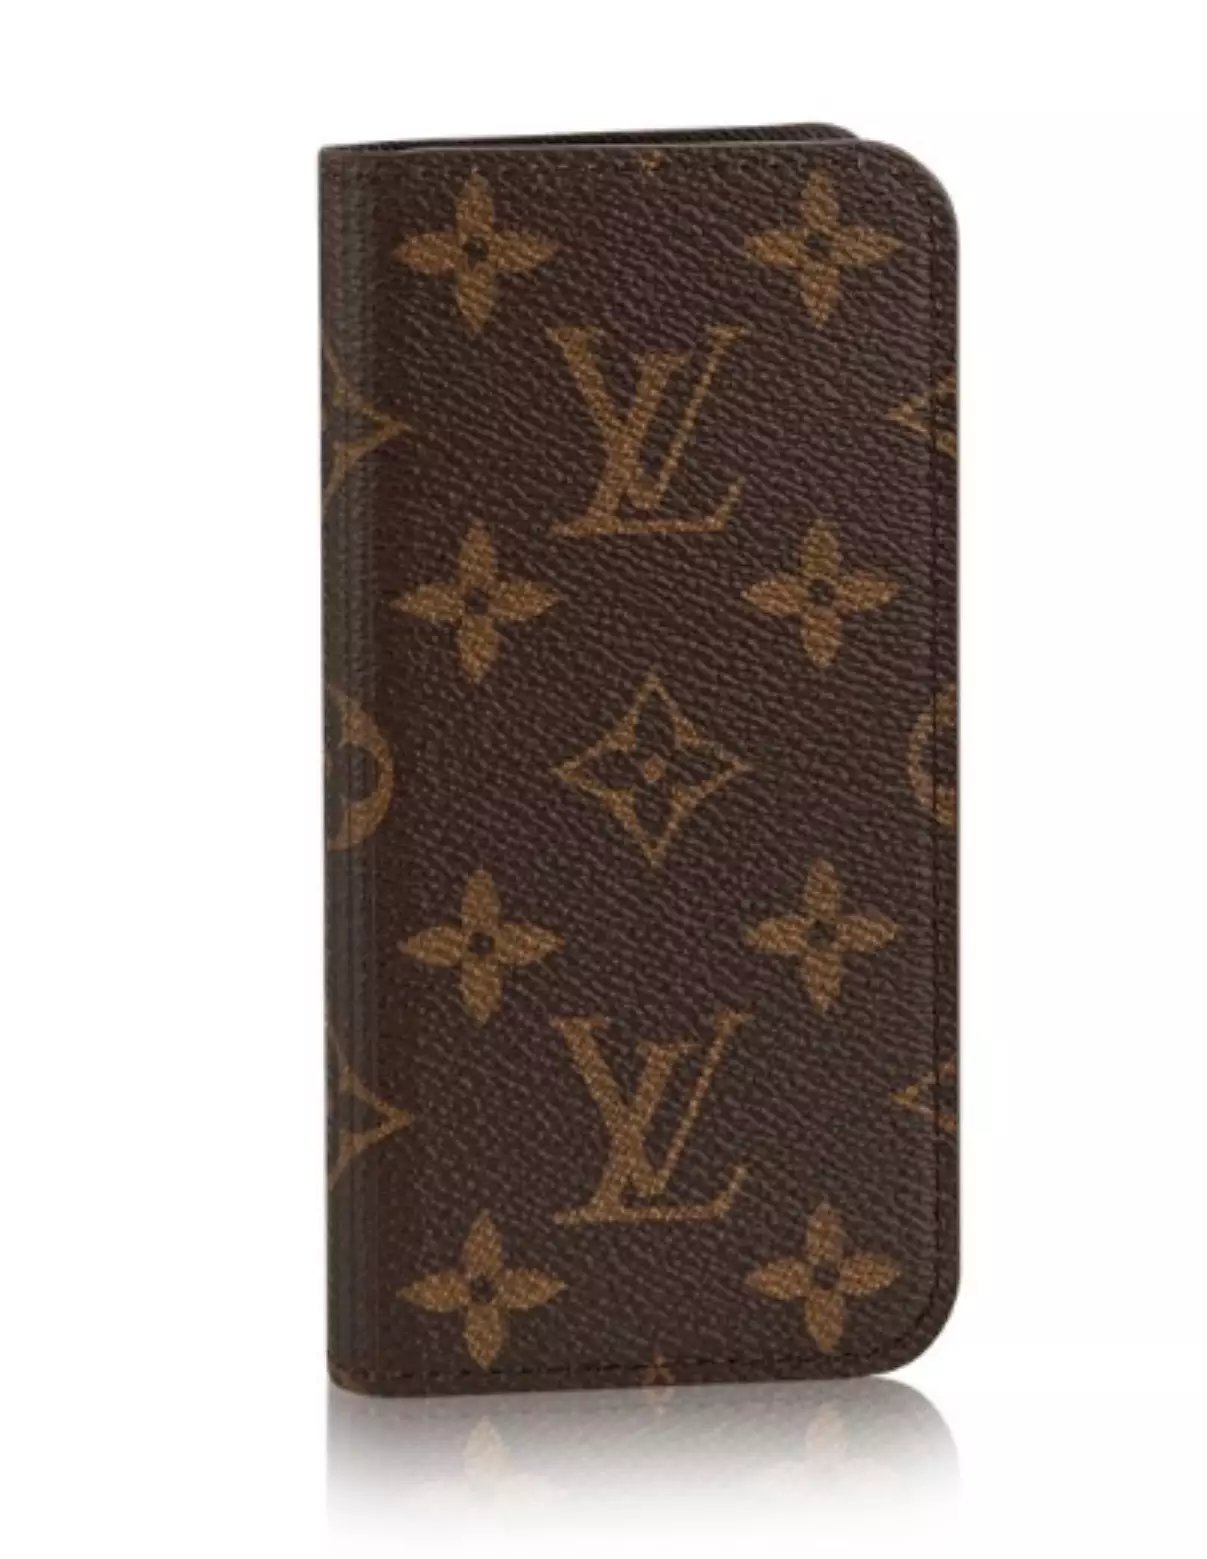 original iphone hülle edle iphone hüllen Louis Vuitton iphone7 Plus hülle handy cover individuell handycover 7lbst machen handyhüllen s3 coole handyhüllen iphone 7 Plus hülle kartenfach neues iphone wann